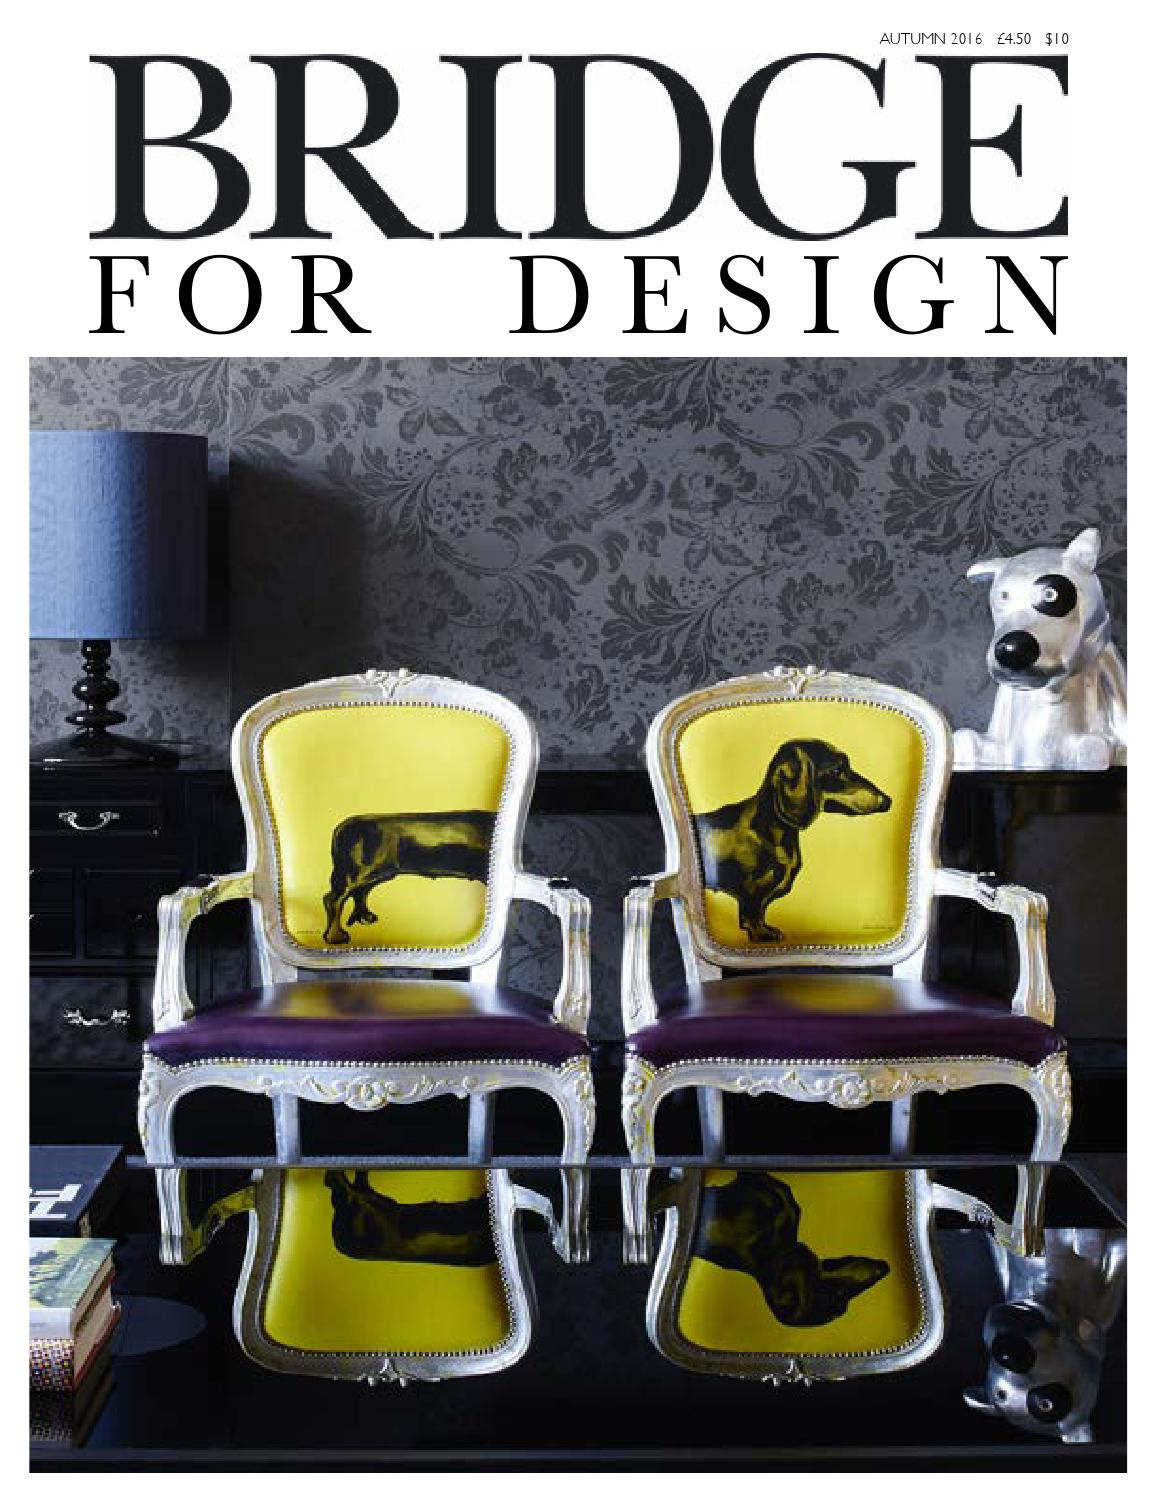 Autumn 2016 By Bridge For Design Issuu